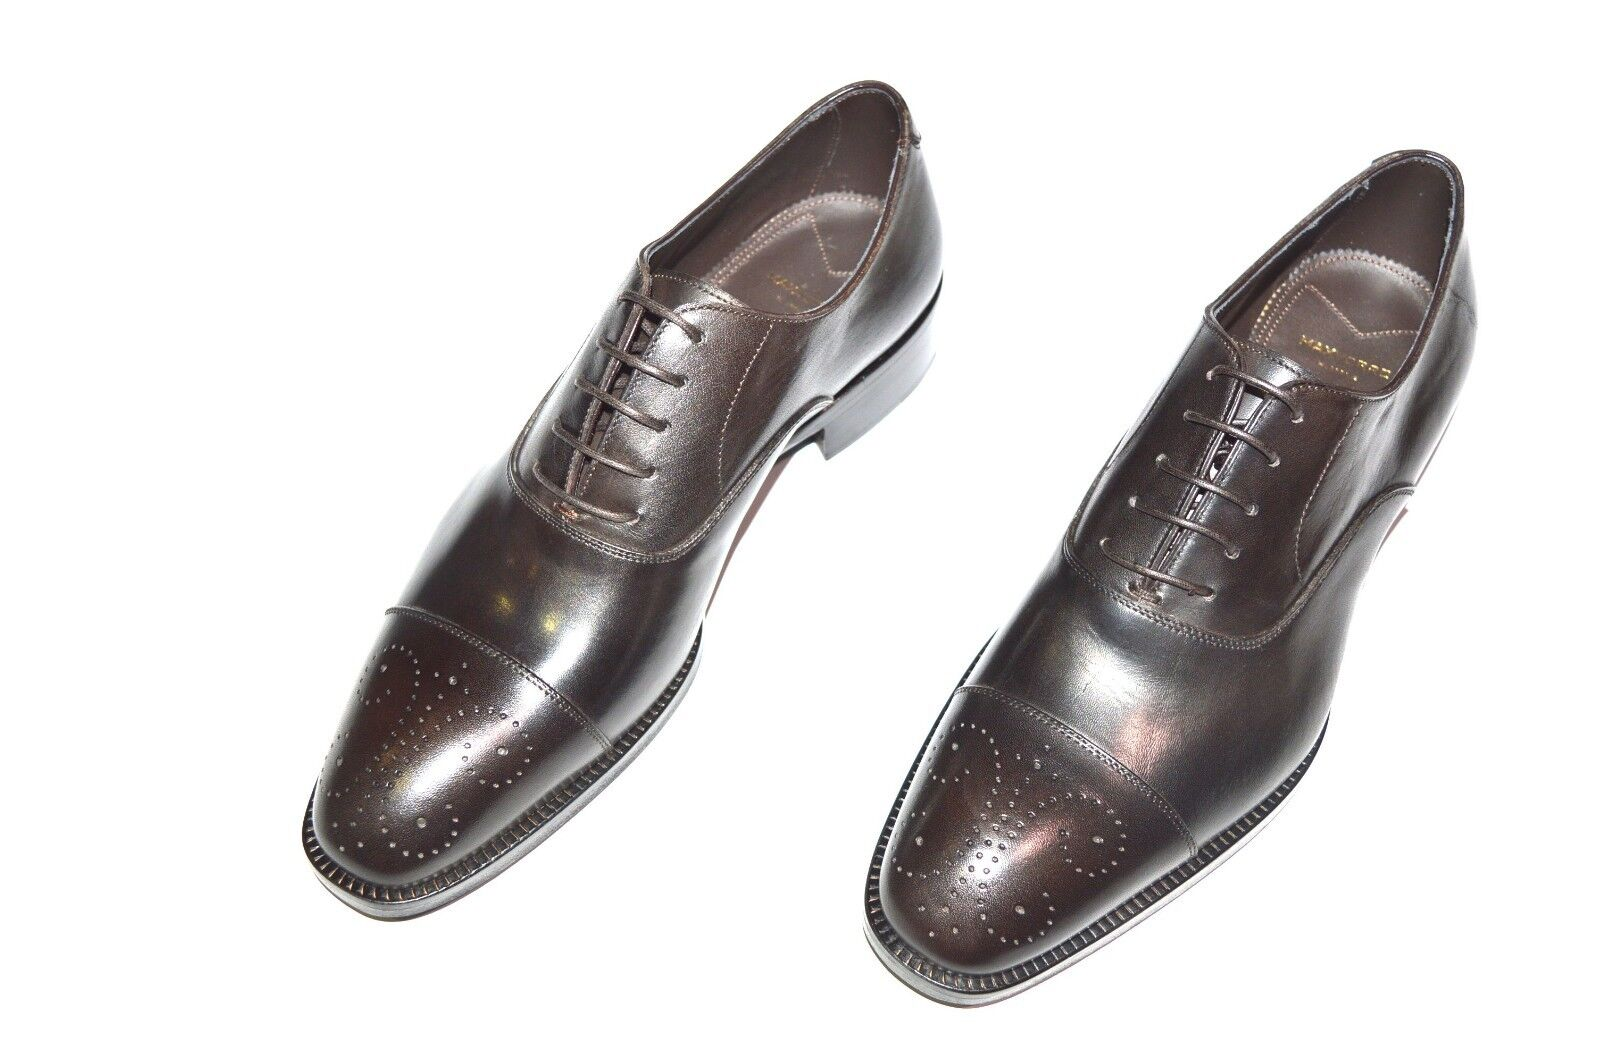 New  MAX VERRE Dress Leather Luxury scarpe Dimensione Eu 43.5 Uk 9.5 Us 10.5 (Cod 150)